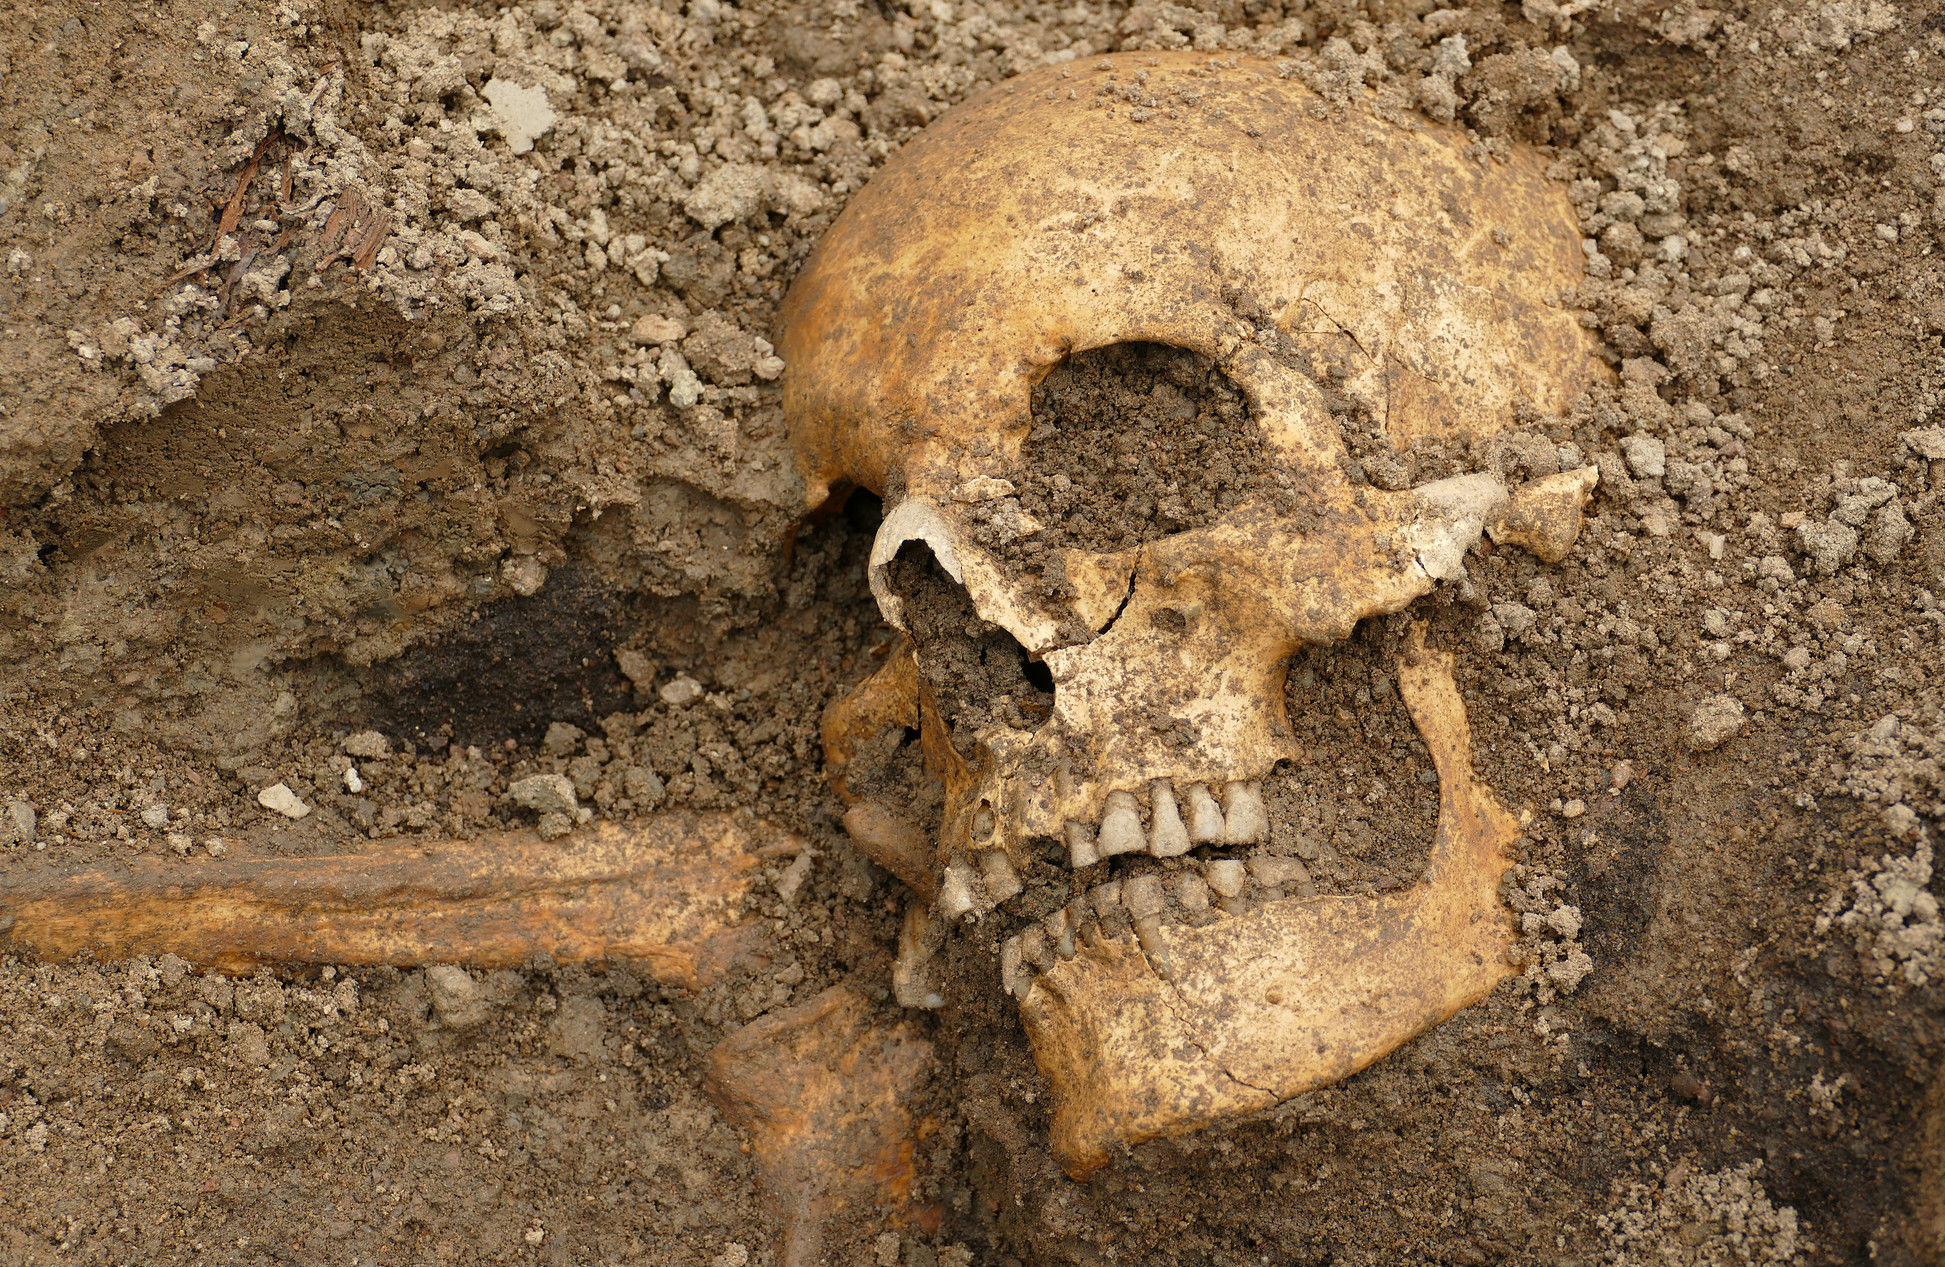 Remains of a man